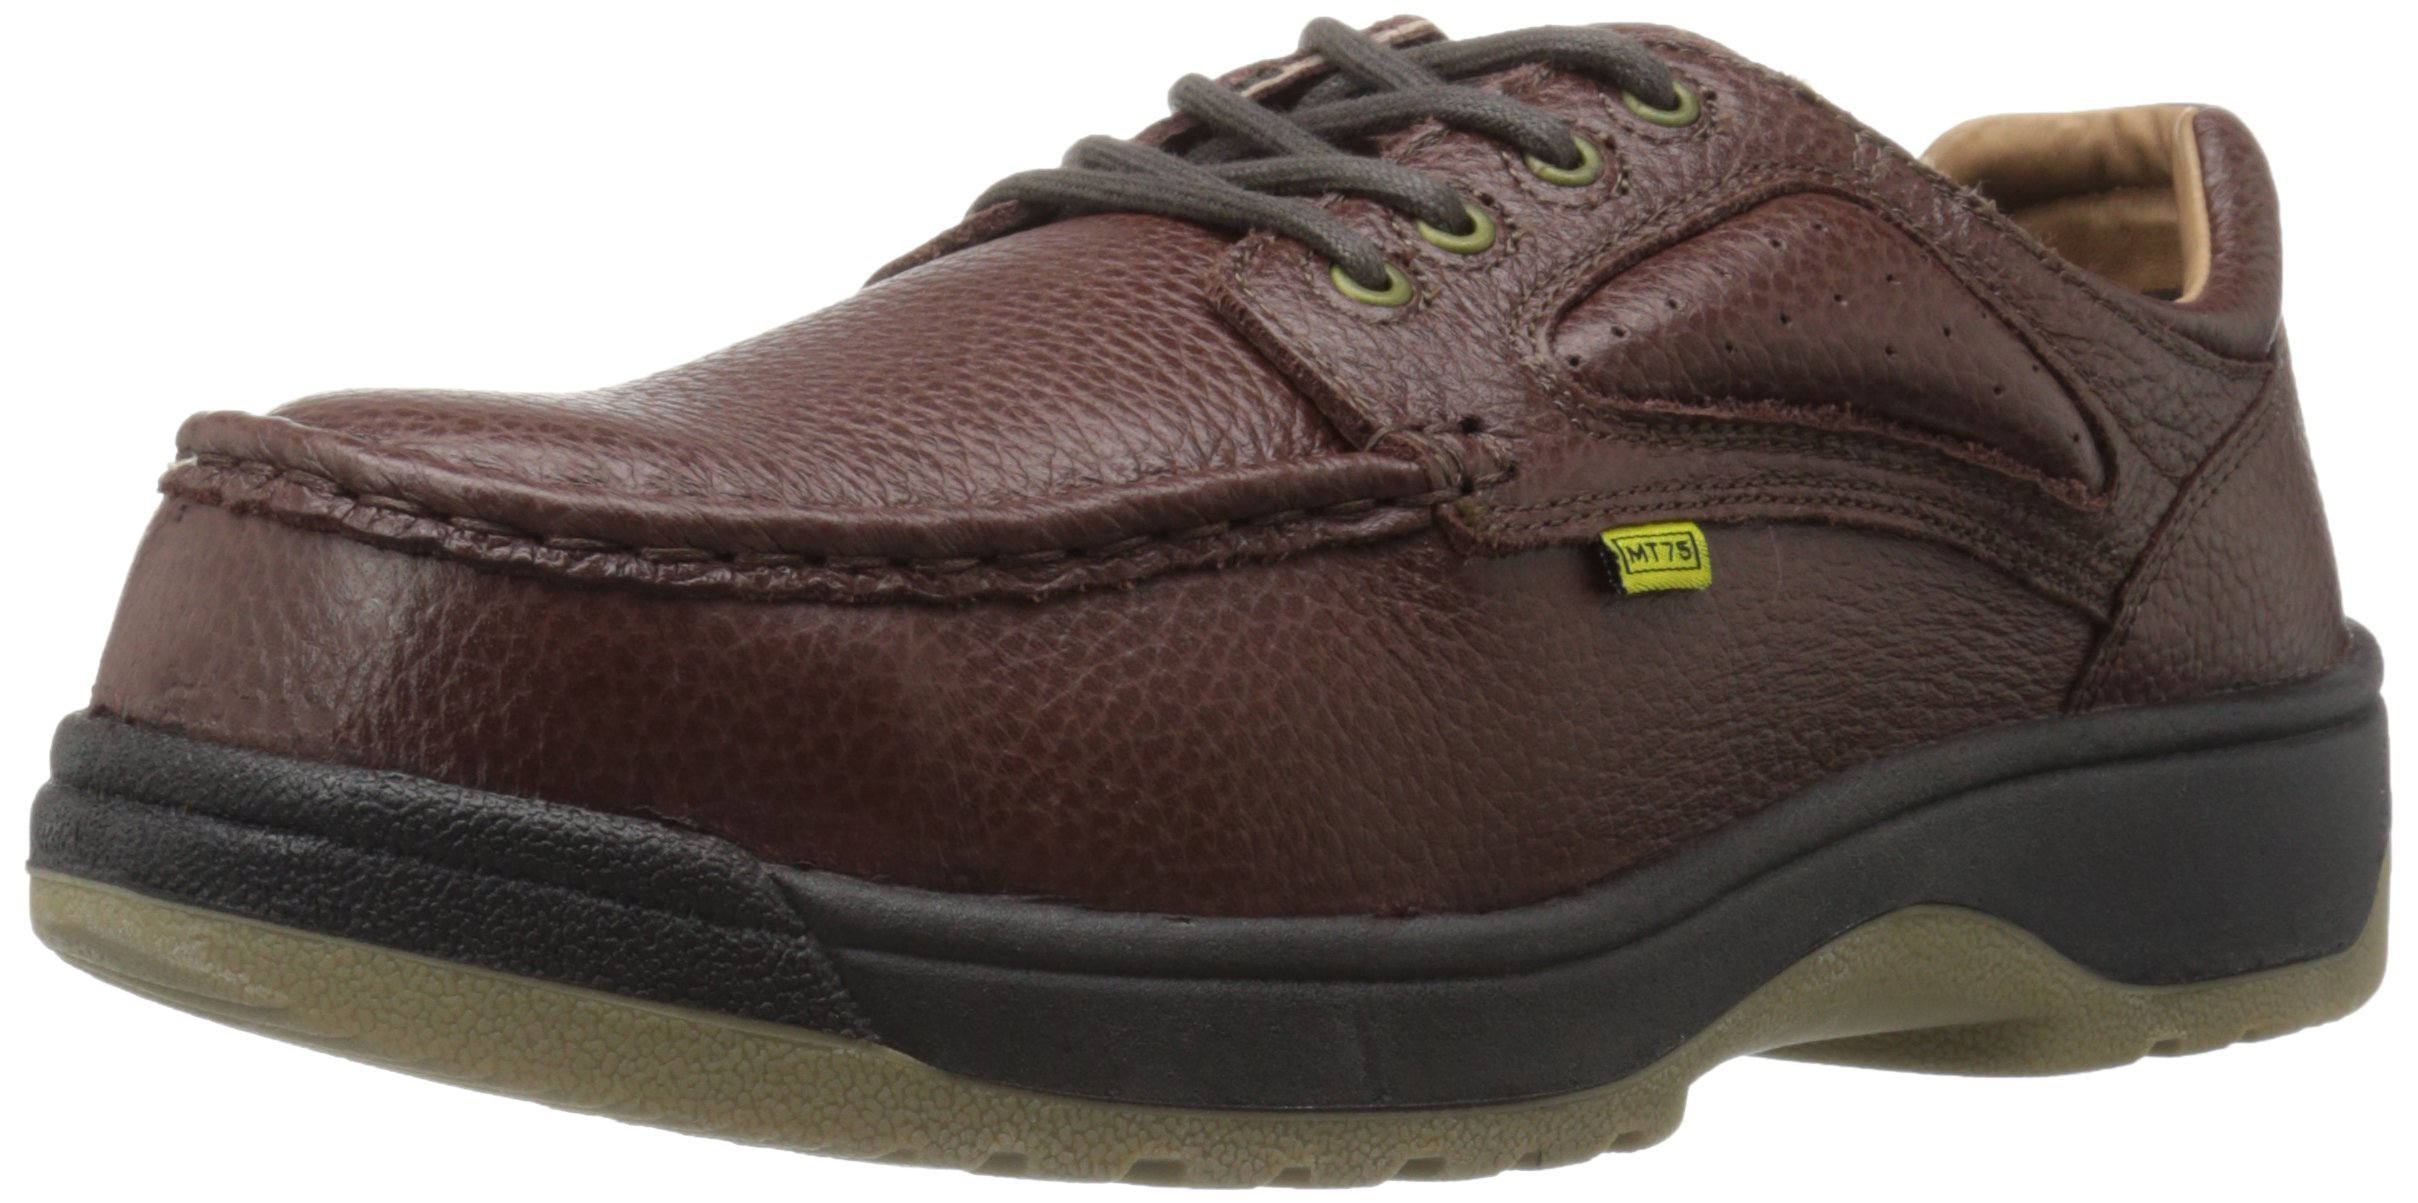 Florsheim Work Men's Compadre FE2440 Work Shoe, Brown, 8 3E US